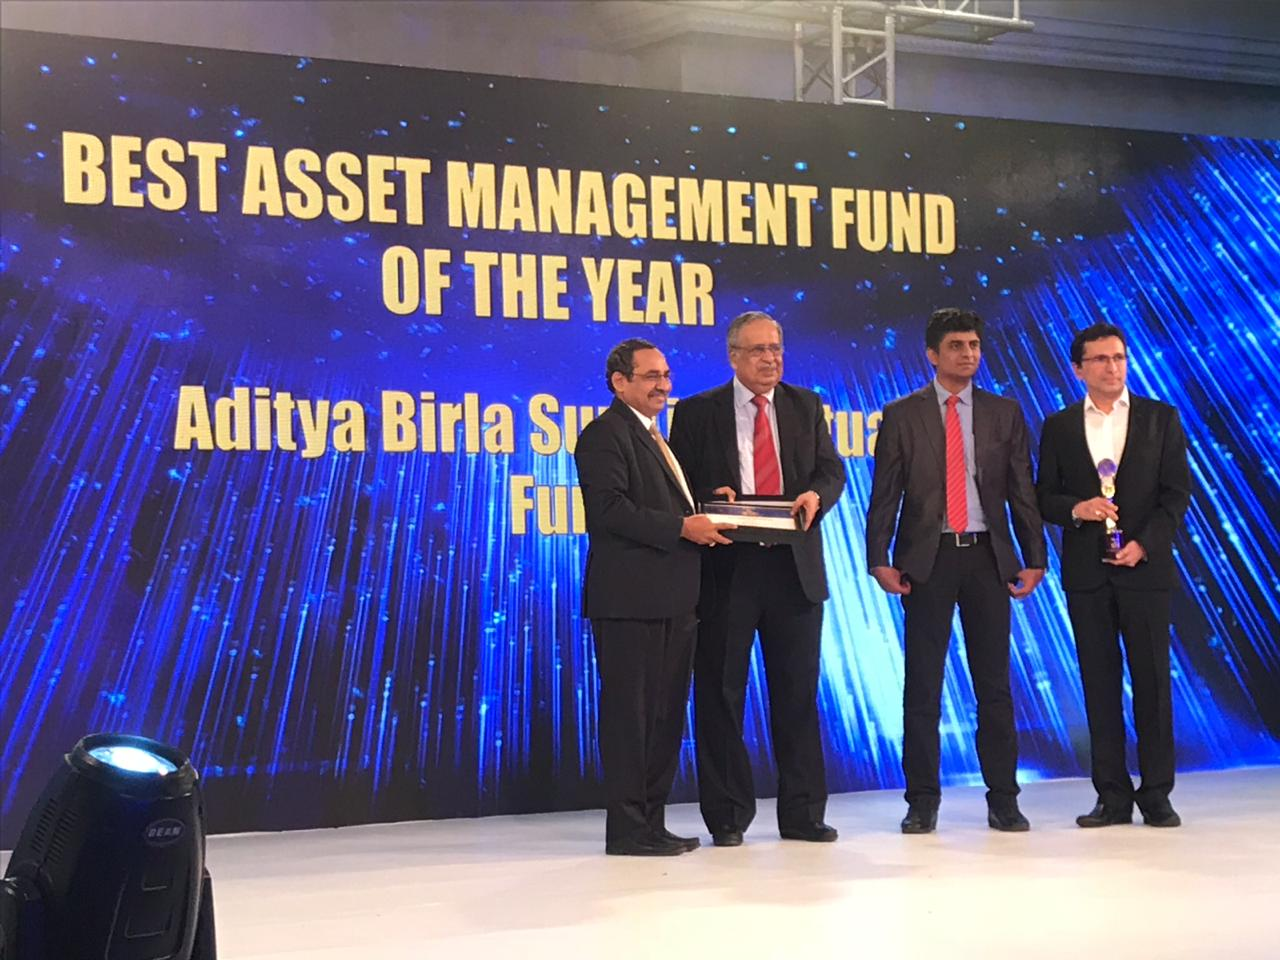 Best asset management fund of the year: Aditya Birla Sun Life Mutual Fund | Formed in 1994, Aditya Birla Sun Life Mutual Fund is a joint venture between the Aditya Birla Group and the Sun Life Financial Inc. of Canada. The fund house offers sector-specific equity schemes, fund of fund schemes, hybrid and monthly income funds, debt and treasury products, and offshore funds. In the last three years, the fund house has increased its penetration into smaller cities and has been in the top AUM quartile consistently for the past 3 years. (Image: Moneycontrol)